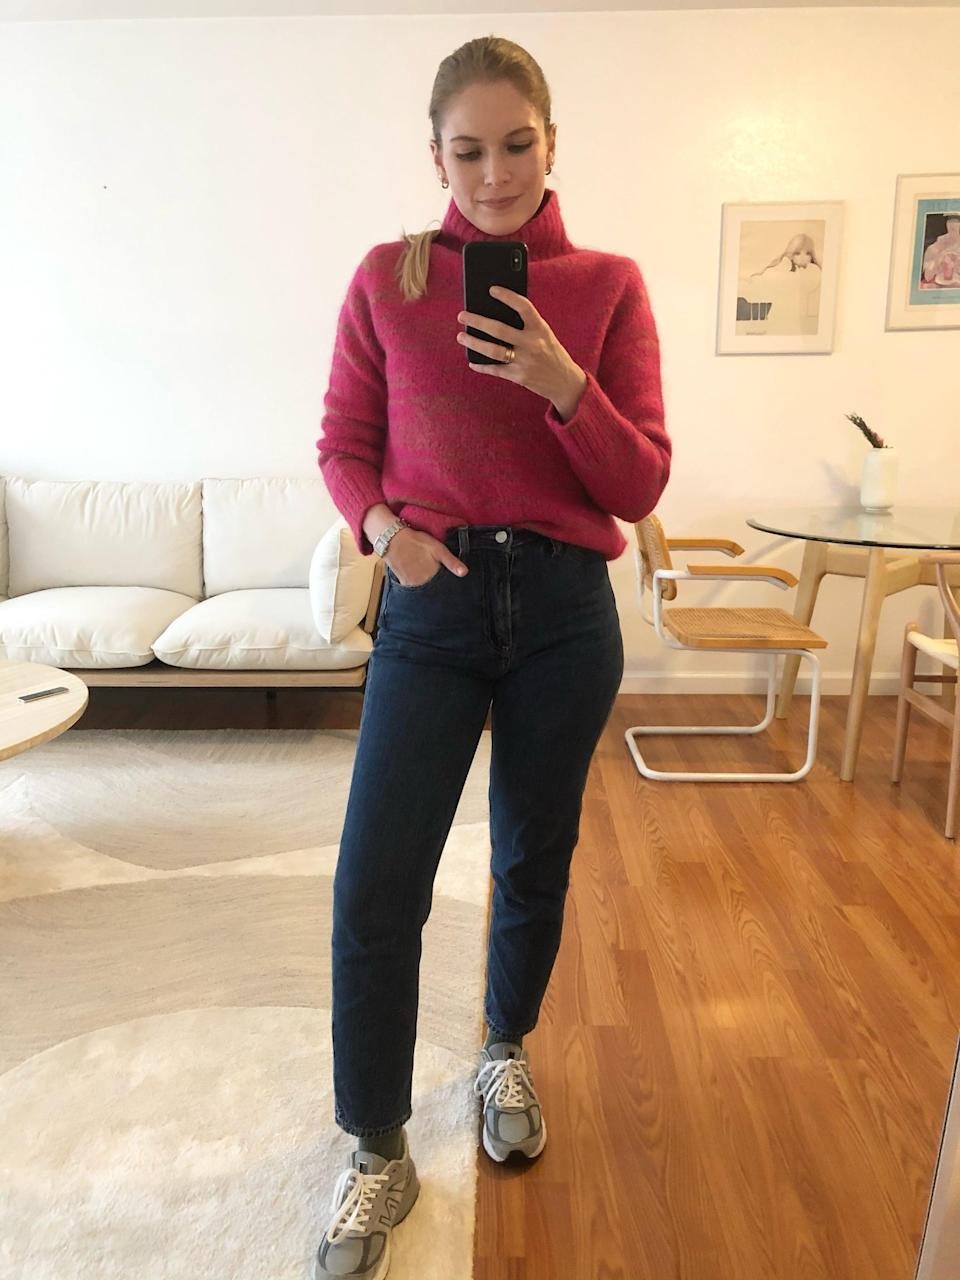 <p>For the days I'm seeing friends or running errands, the <span>Italian Spacedye Sweater</span> ($110) is perfect with jeans and sneakers.</p>